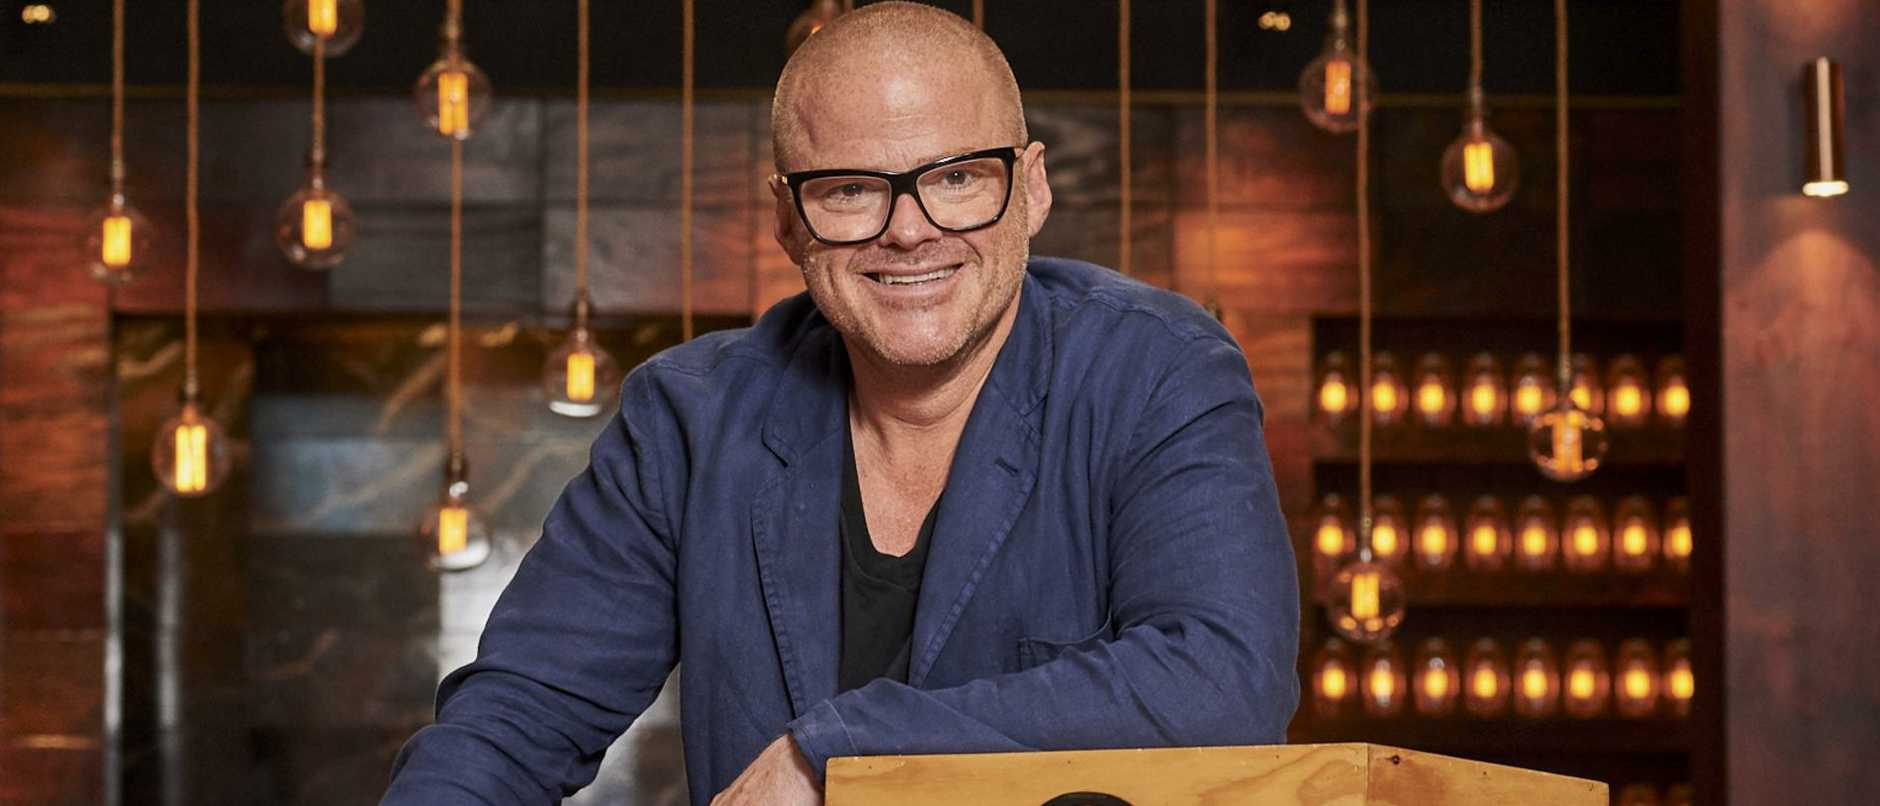 Network 10 has long held Heston Blumenthal as part of its MasterChef family, but now its loyalty has waned, just weeks after his wages woes were revealed.